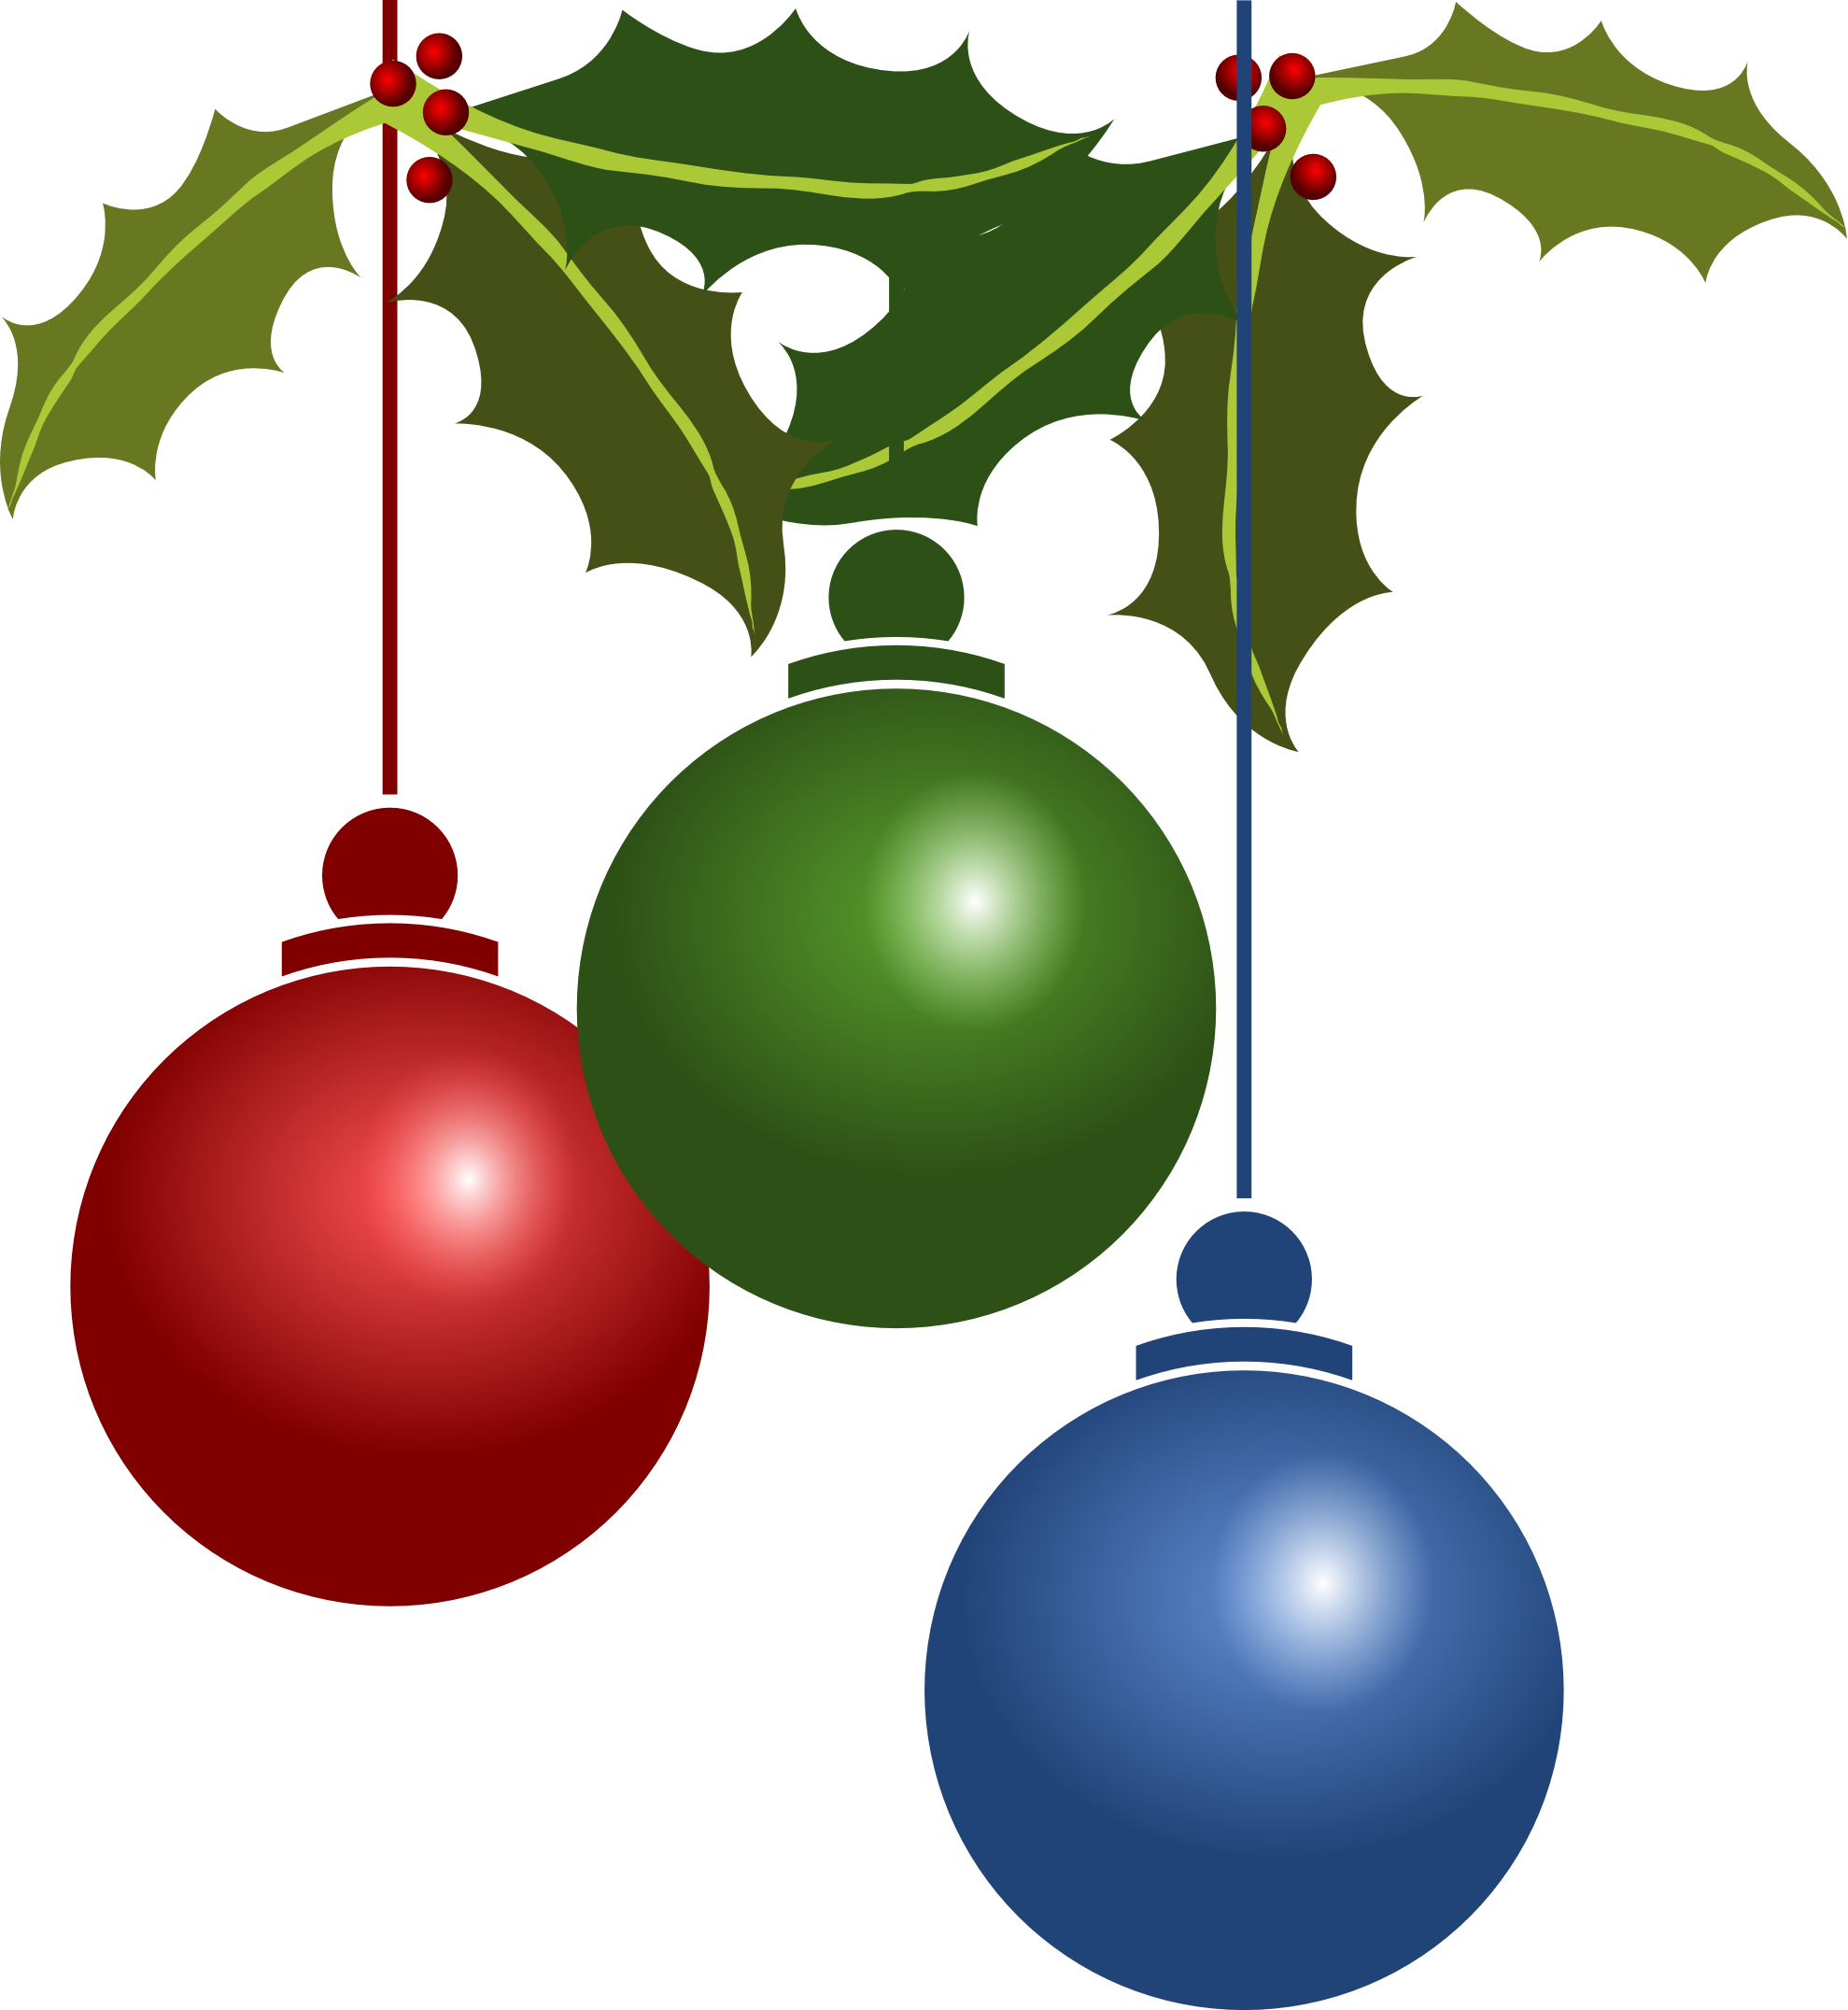 Holly christmas ornaments - Christmas 20ornament 20clipart